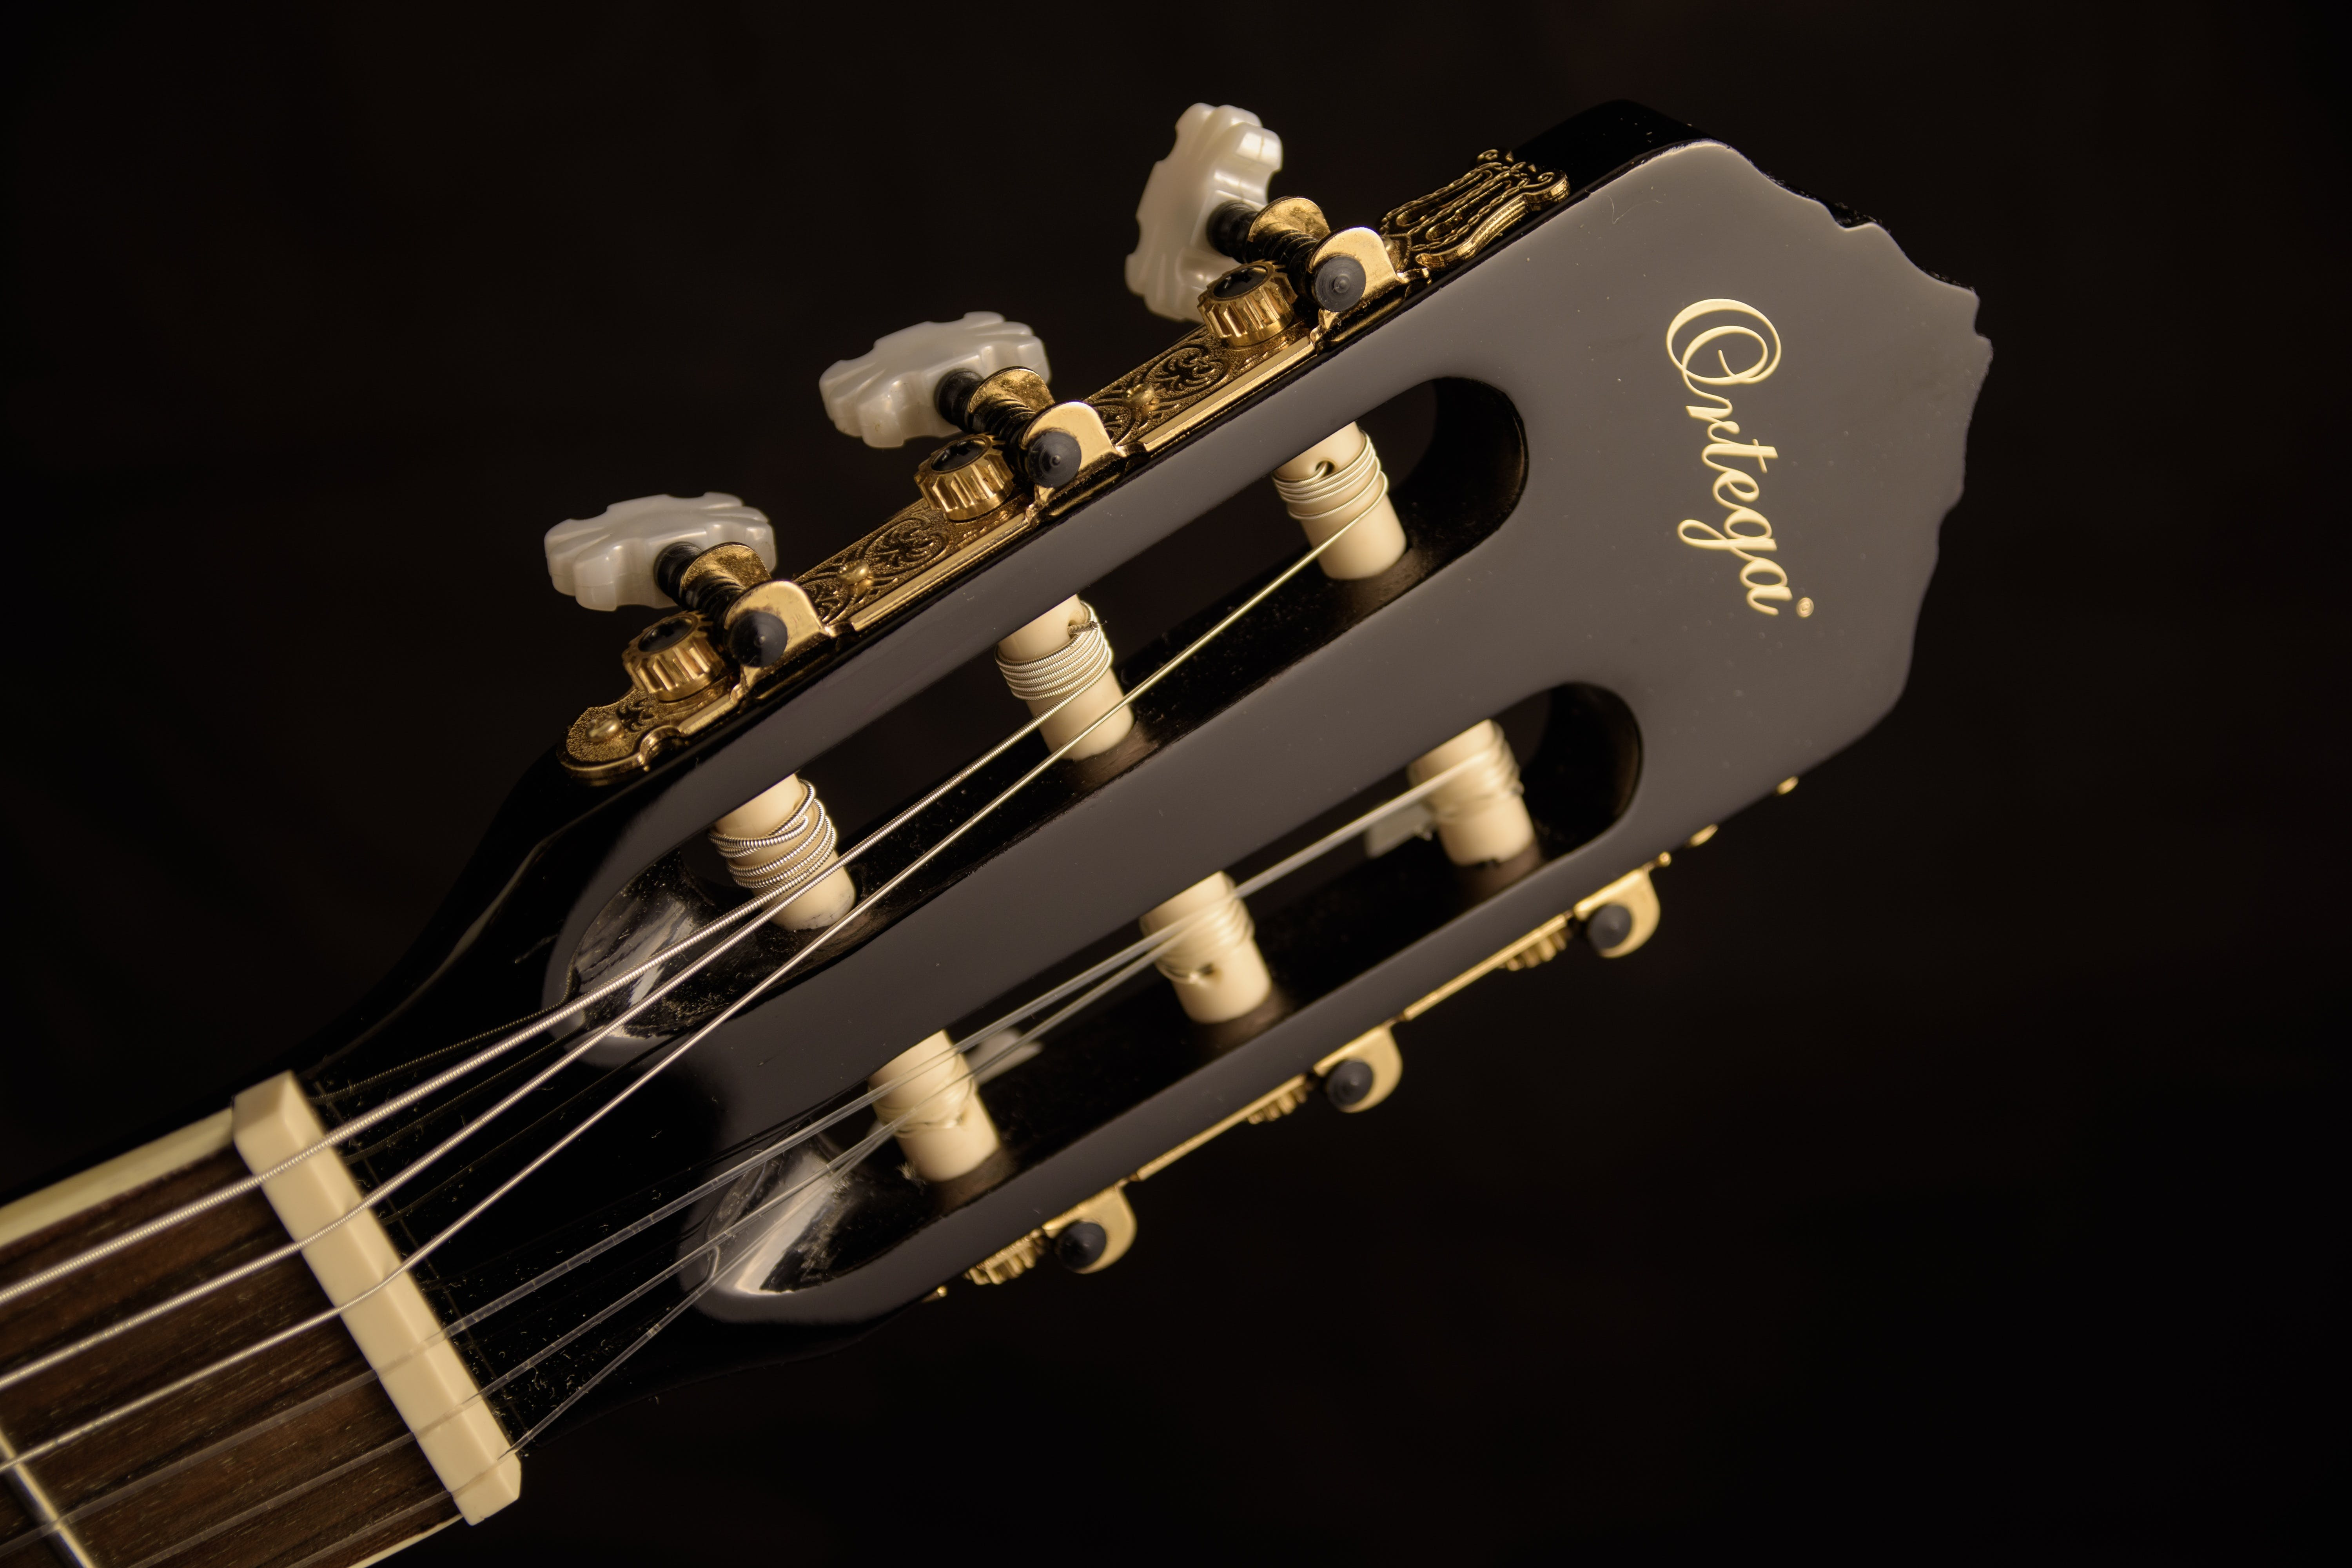 Black Ortega Guitar Headstock